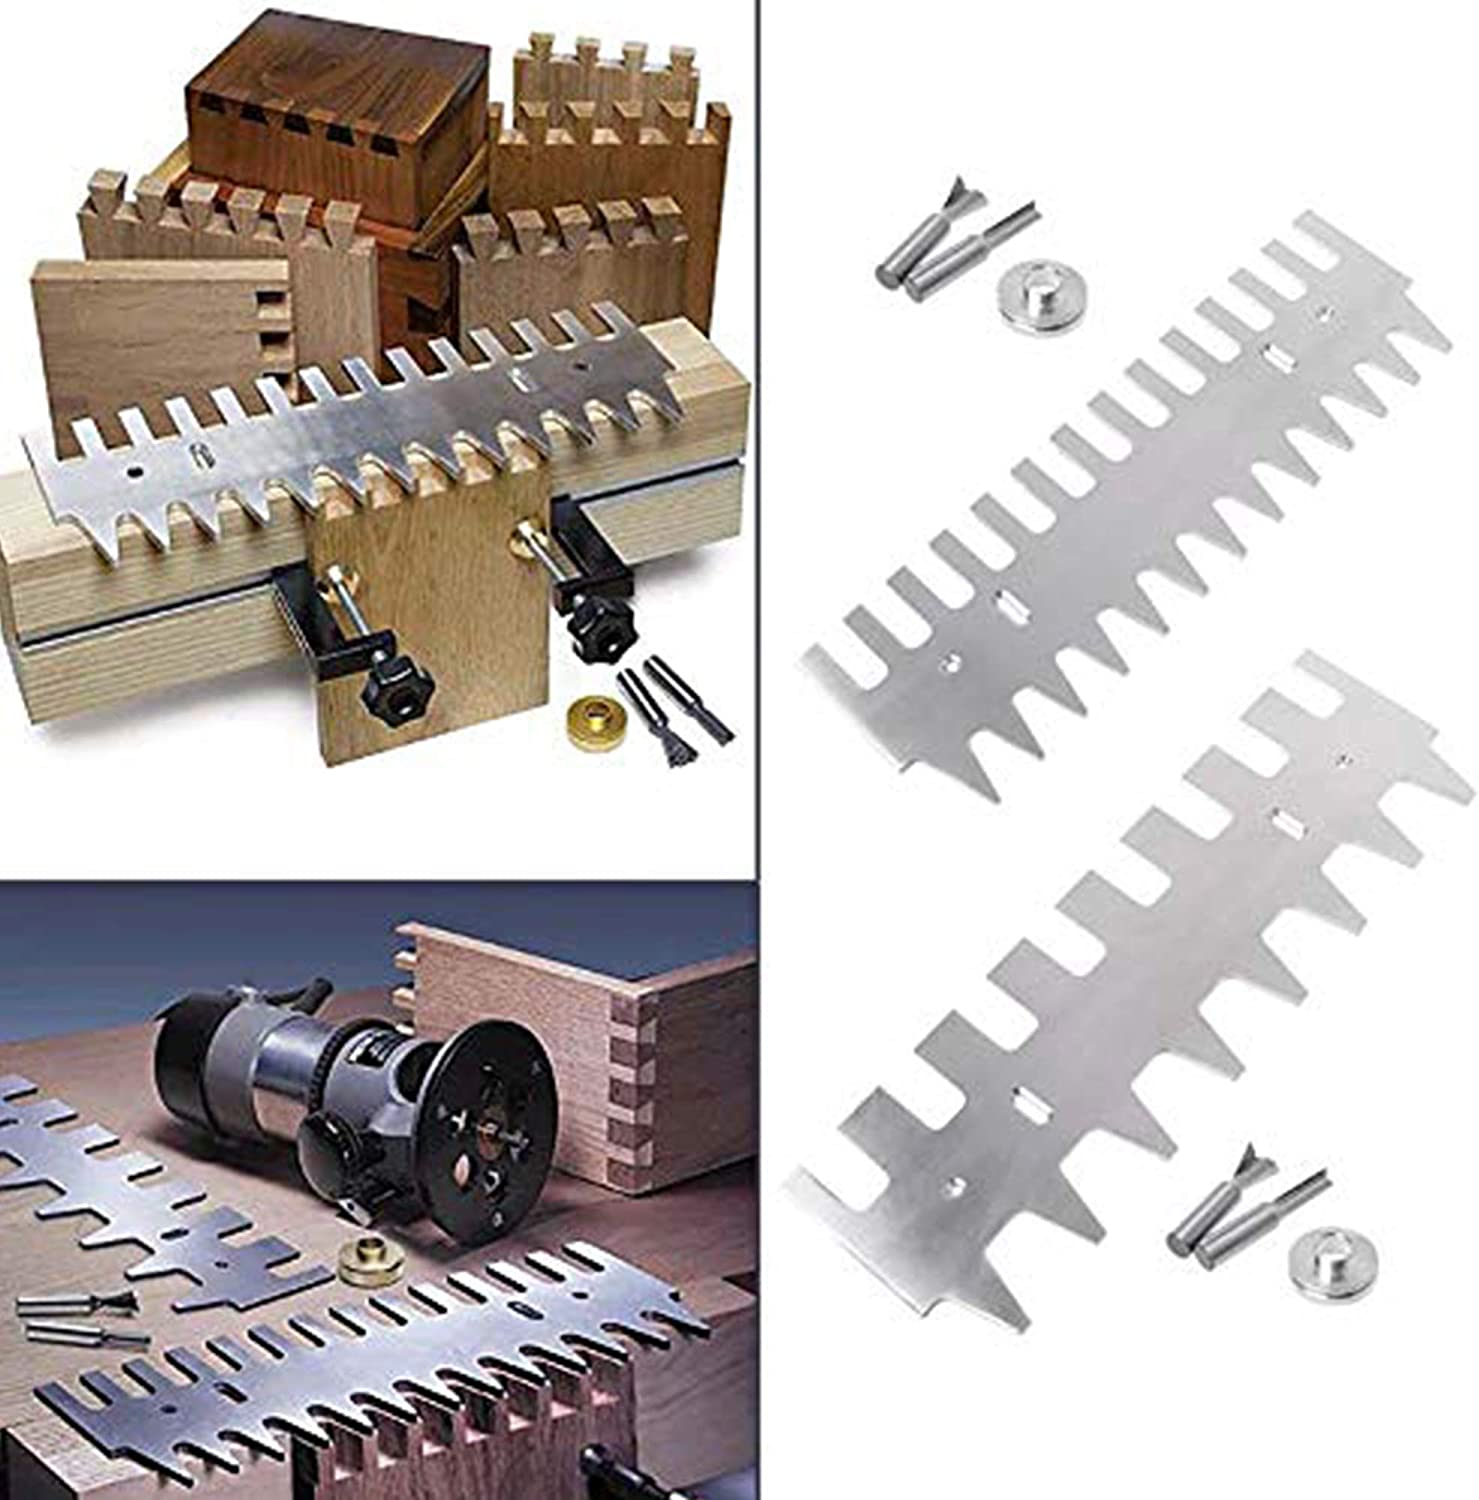 Huanyu Dovetail Template 1//4 Shank Bit 15//16 inch Guide Bushing Set Aluminum Alloy Drawers Accessories 15inch Template Kit